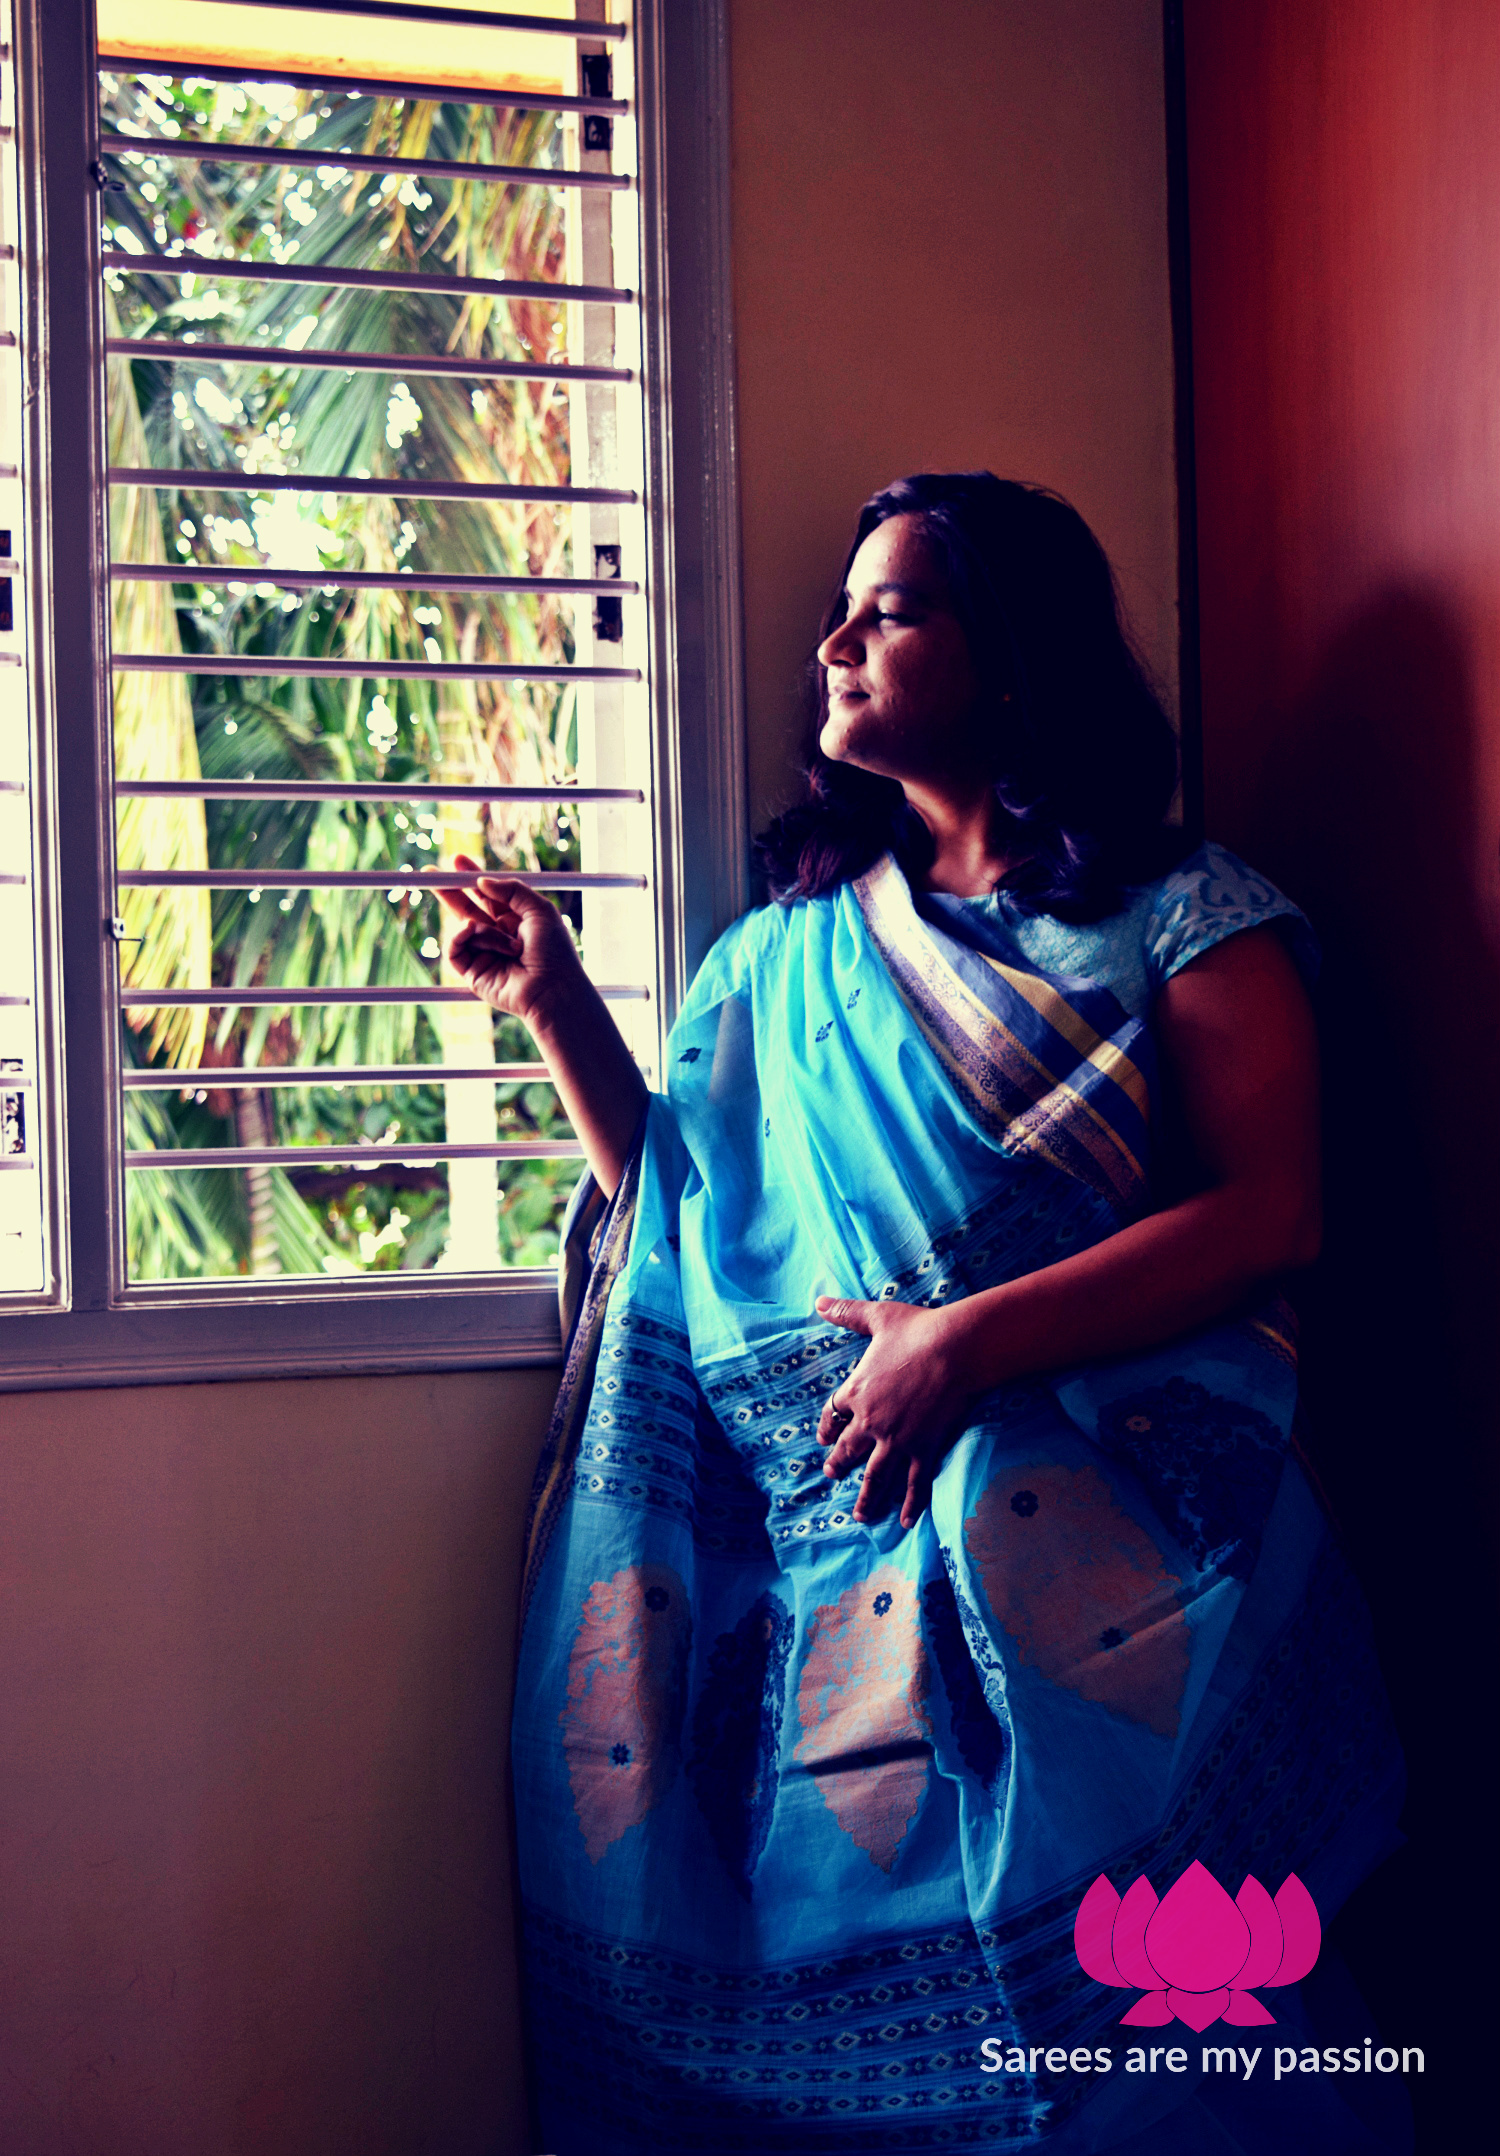 Sarees are my passion - Bengal Cotton